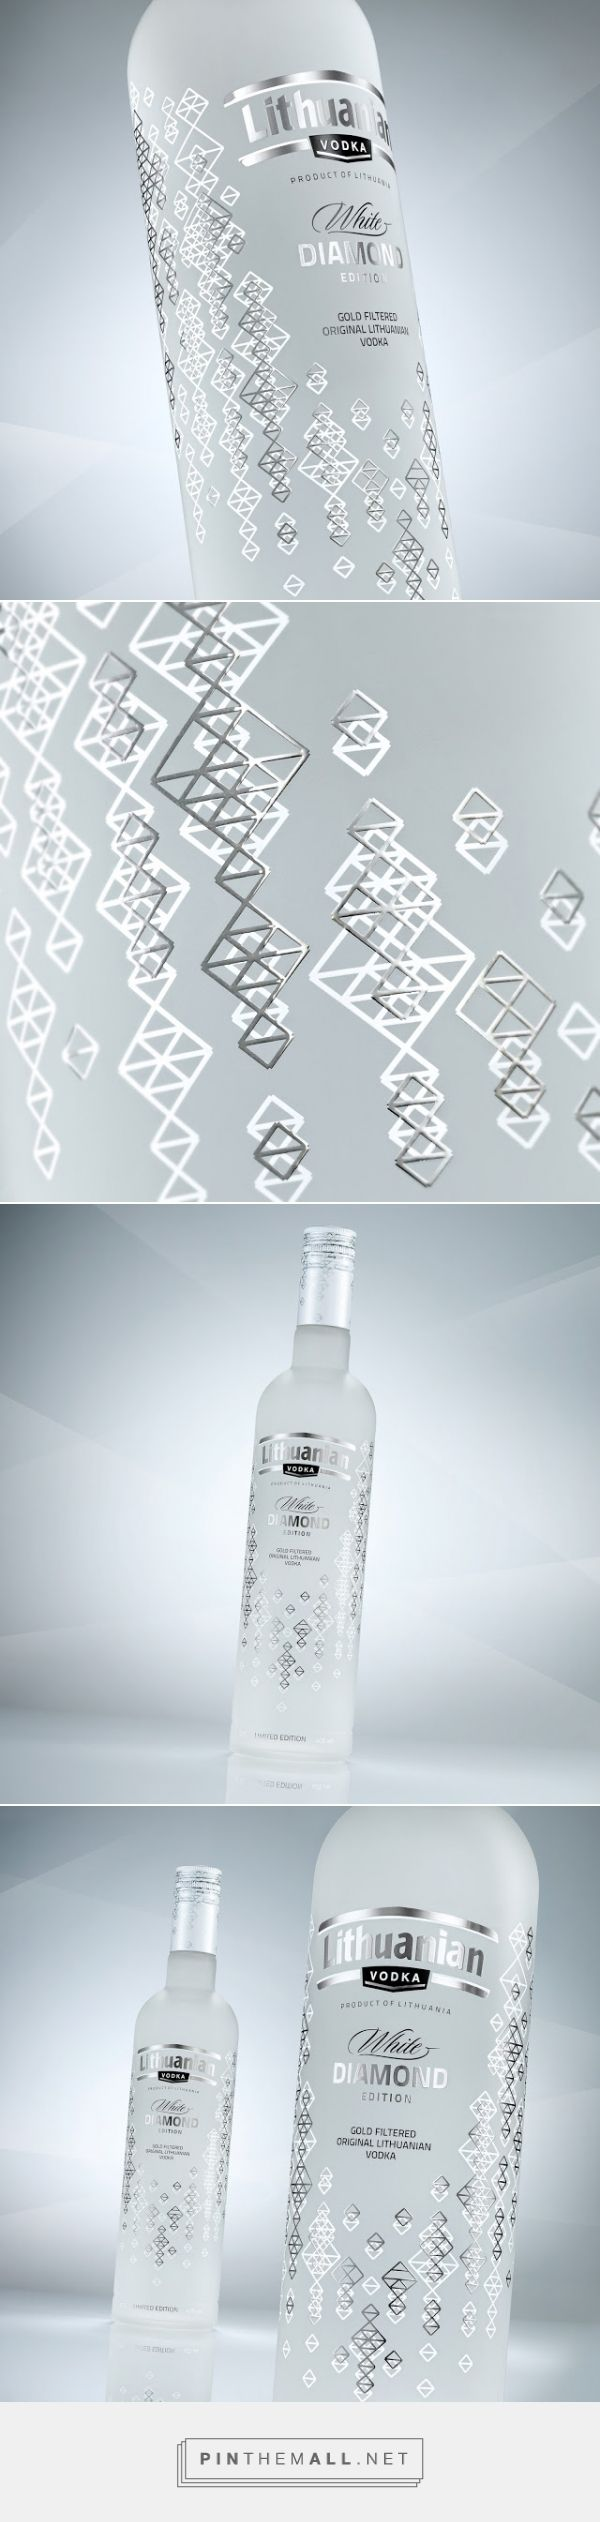 Lithuanian Vodka Gold & Diamond #packaging by Studija CREATA - http://www.packagingoftheworld.com/2015/01/lithuanian-vodka-gold-diamond-edition.html